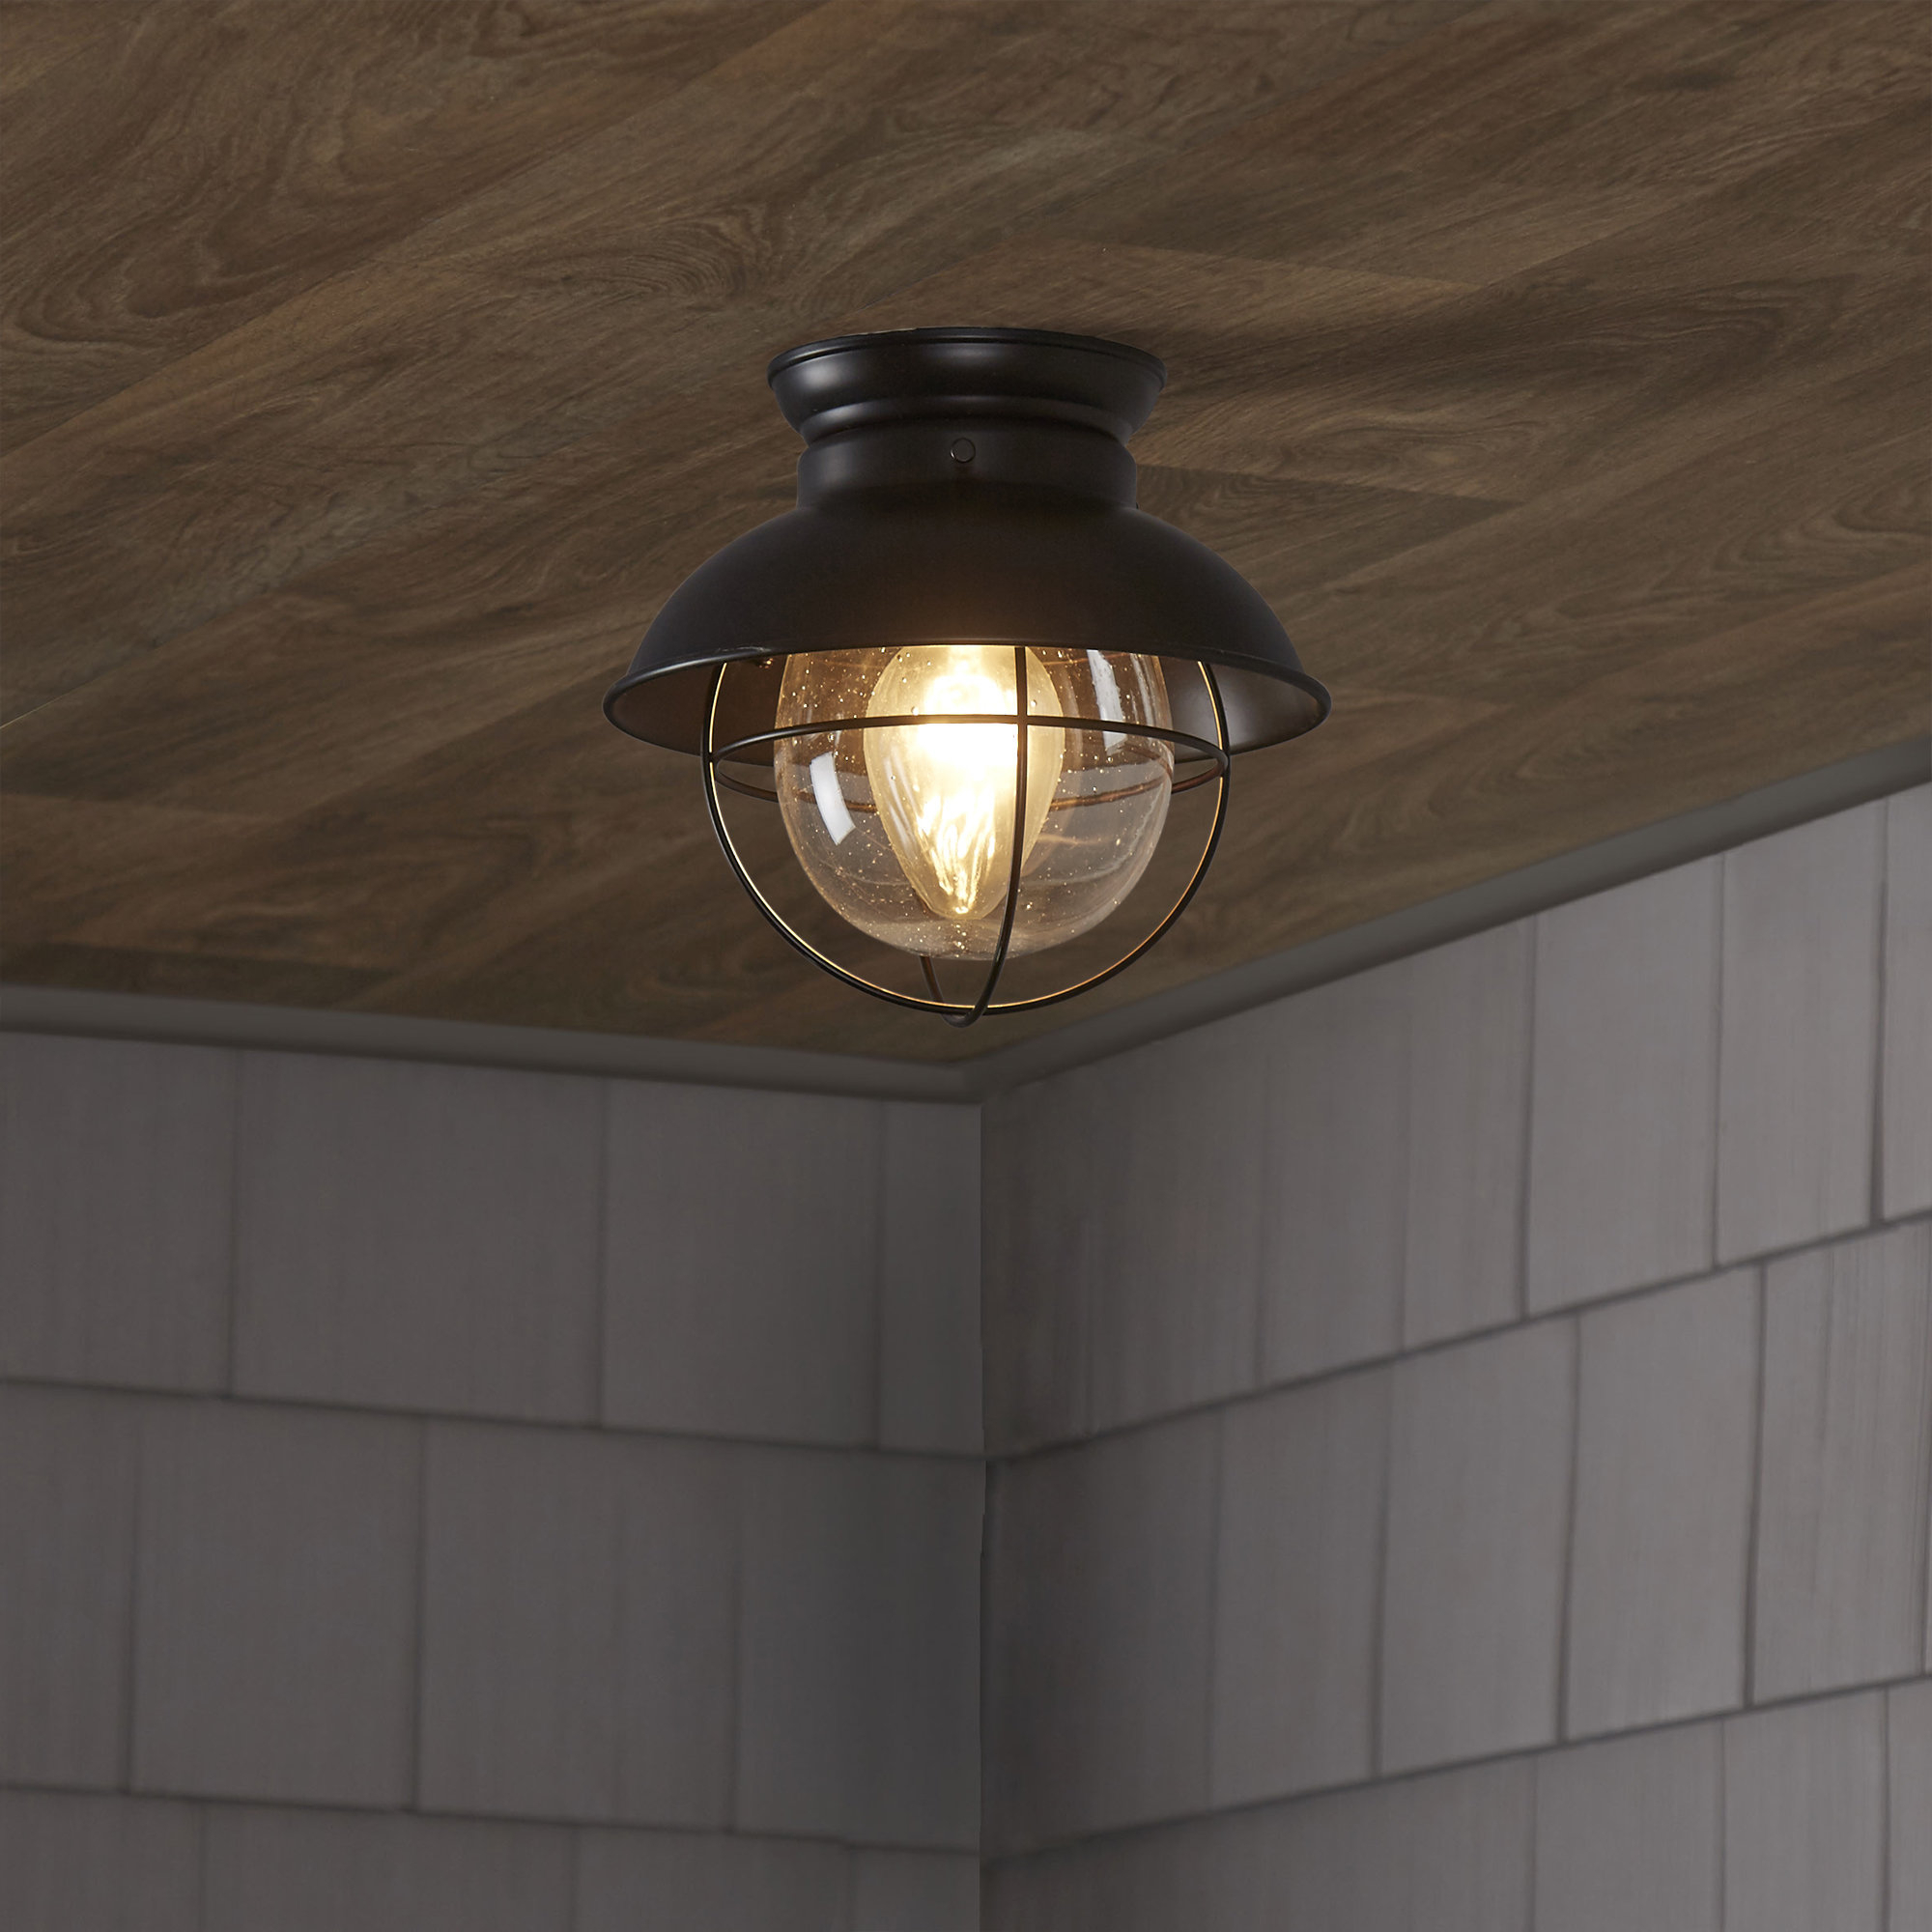 2020 Beachcrest Home Mueller 1 Light Single Dome Pendant Pertaining To Mueller 1 Light Single Dome Pendants (Gallery 7 of 20)